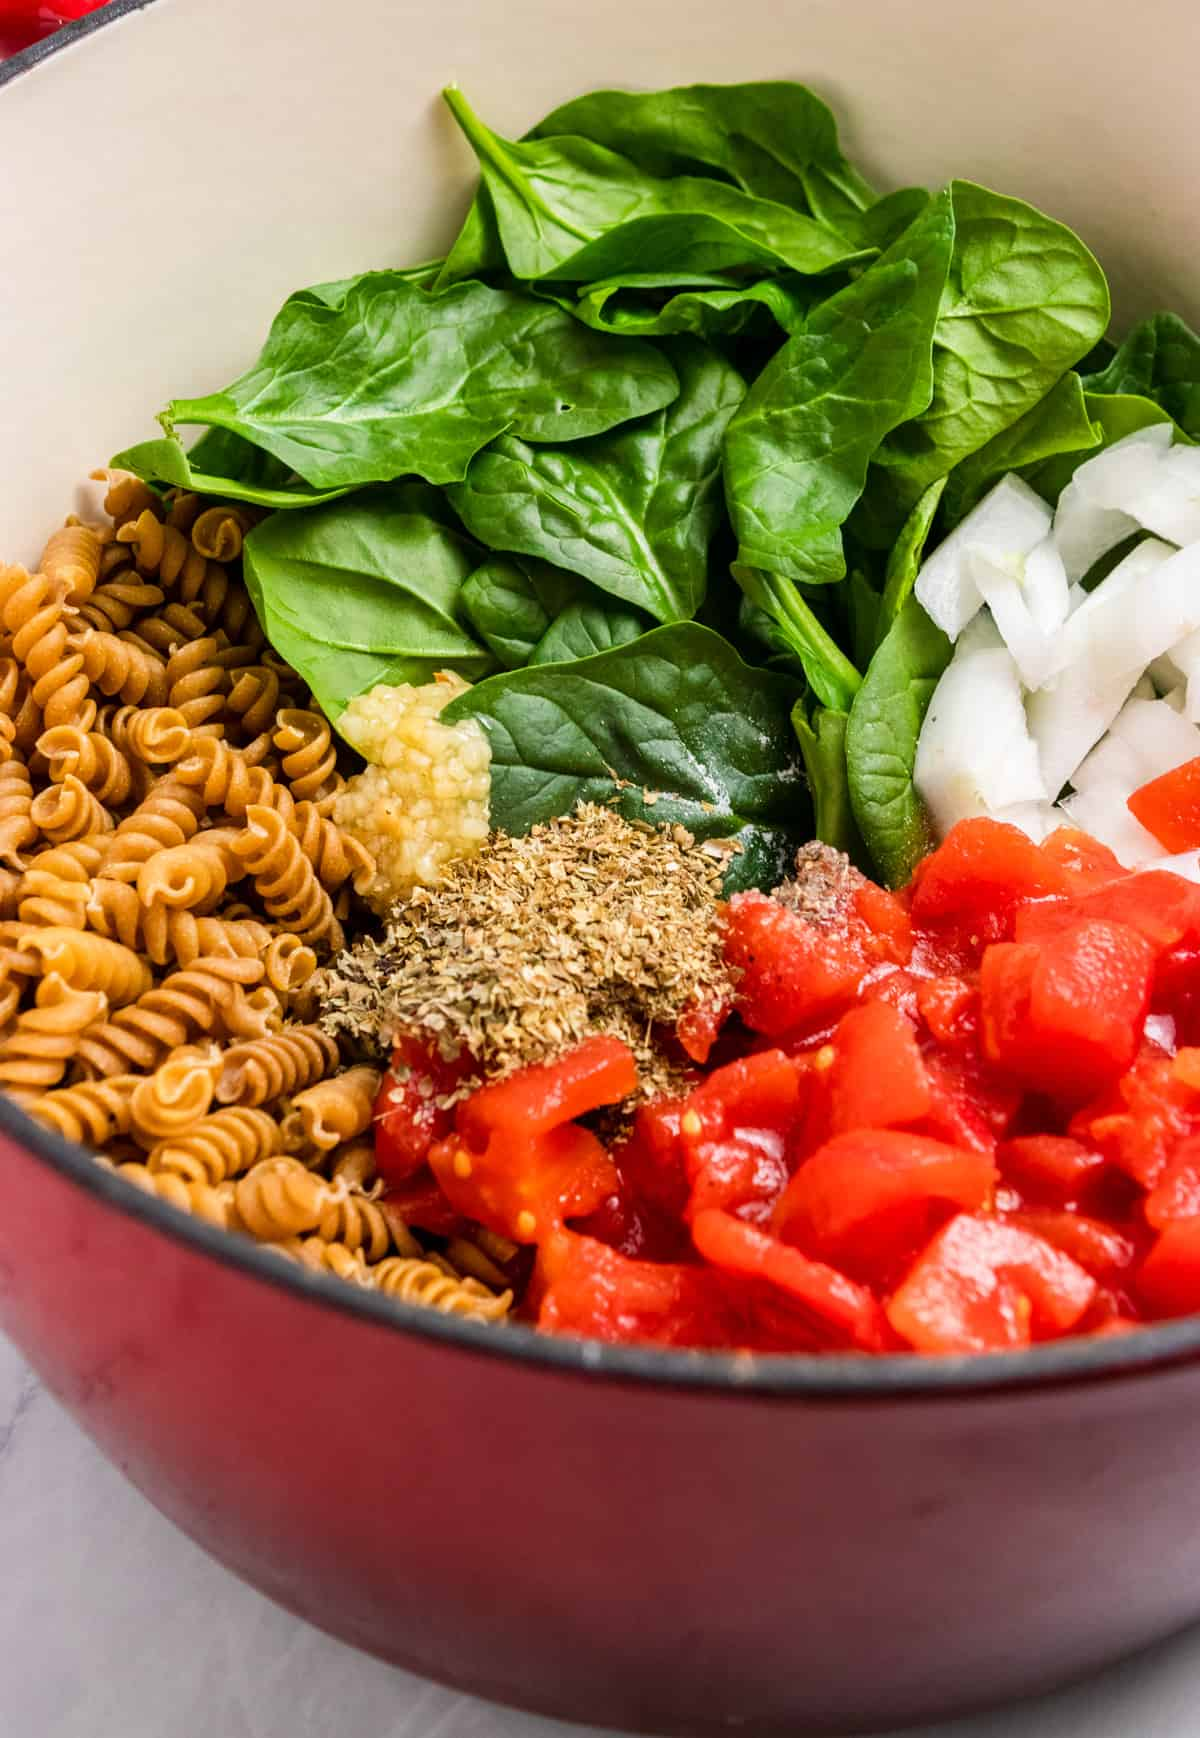 Tomatoes, spinach, rotini and ingredients in pot.